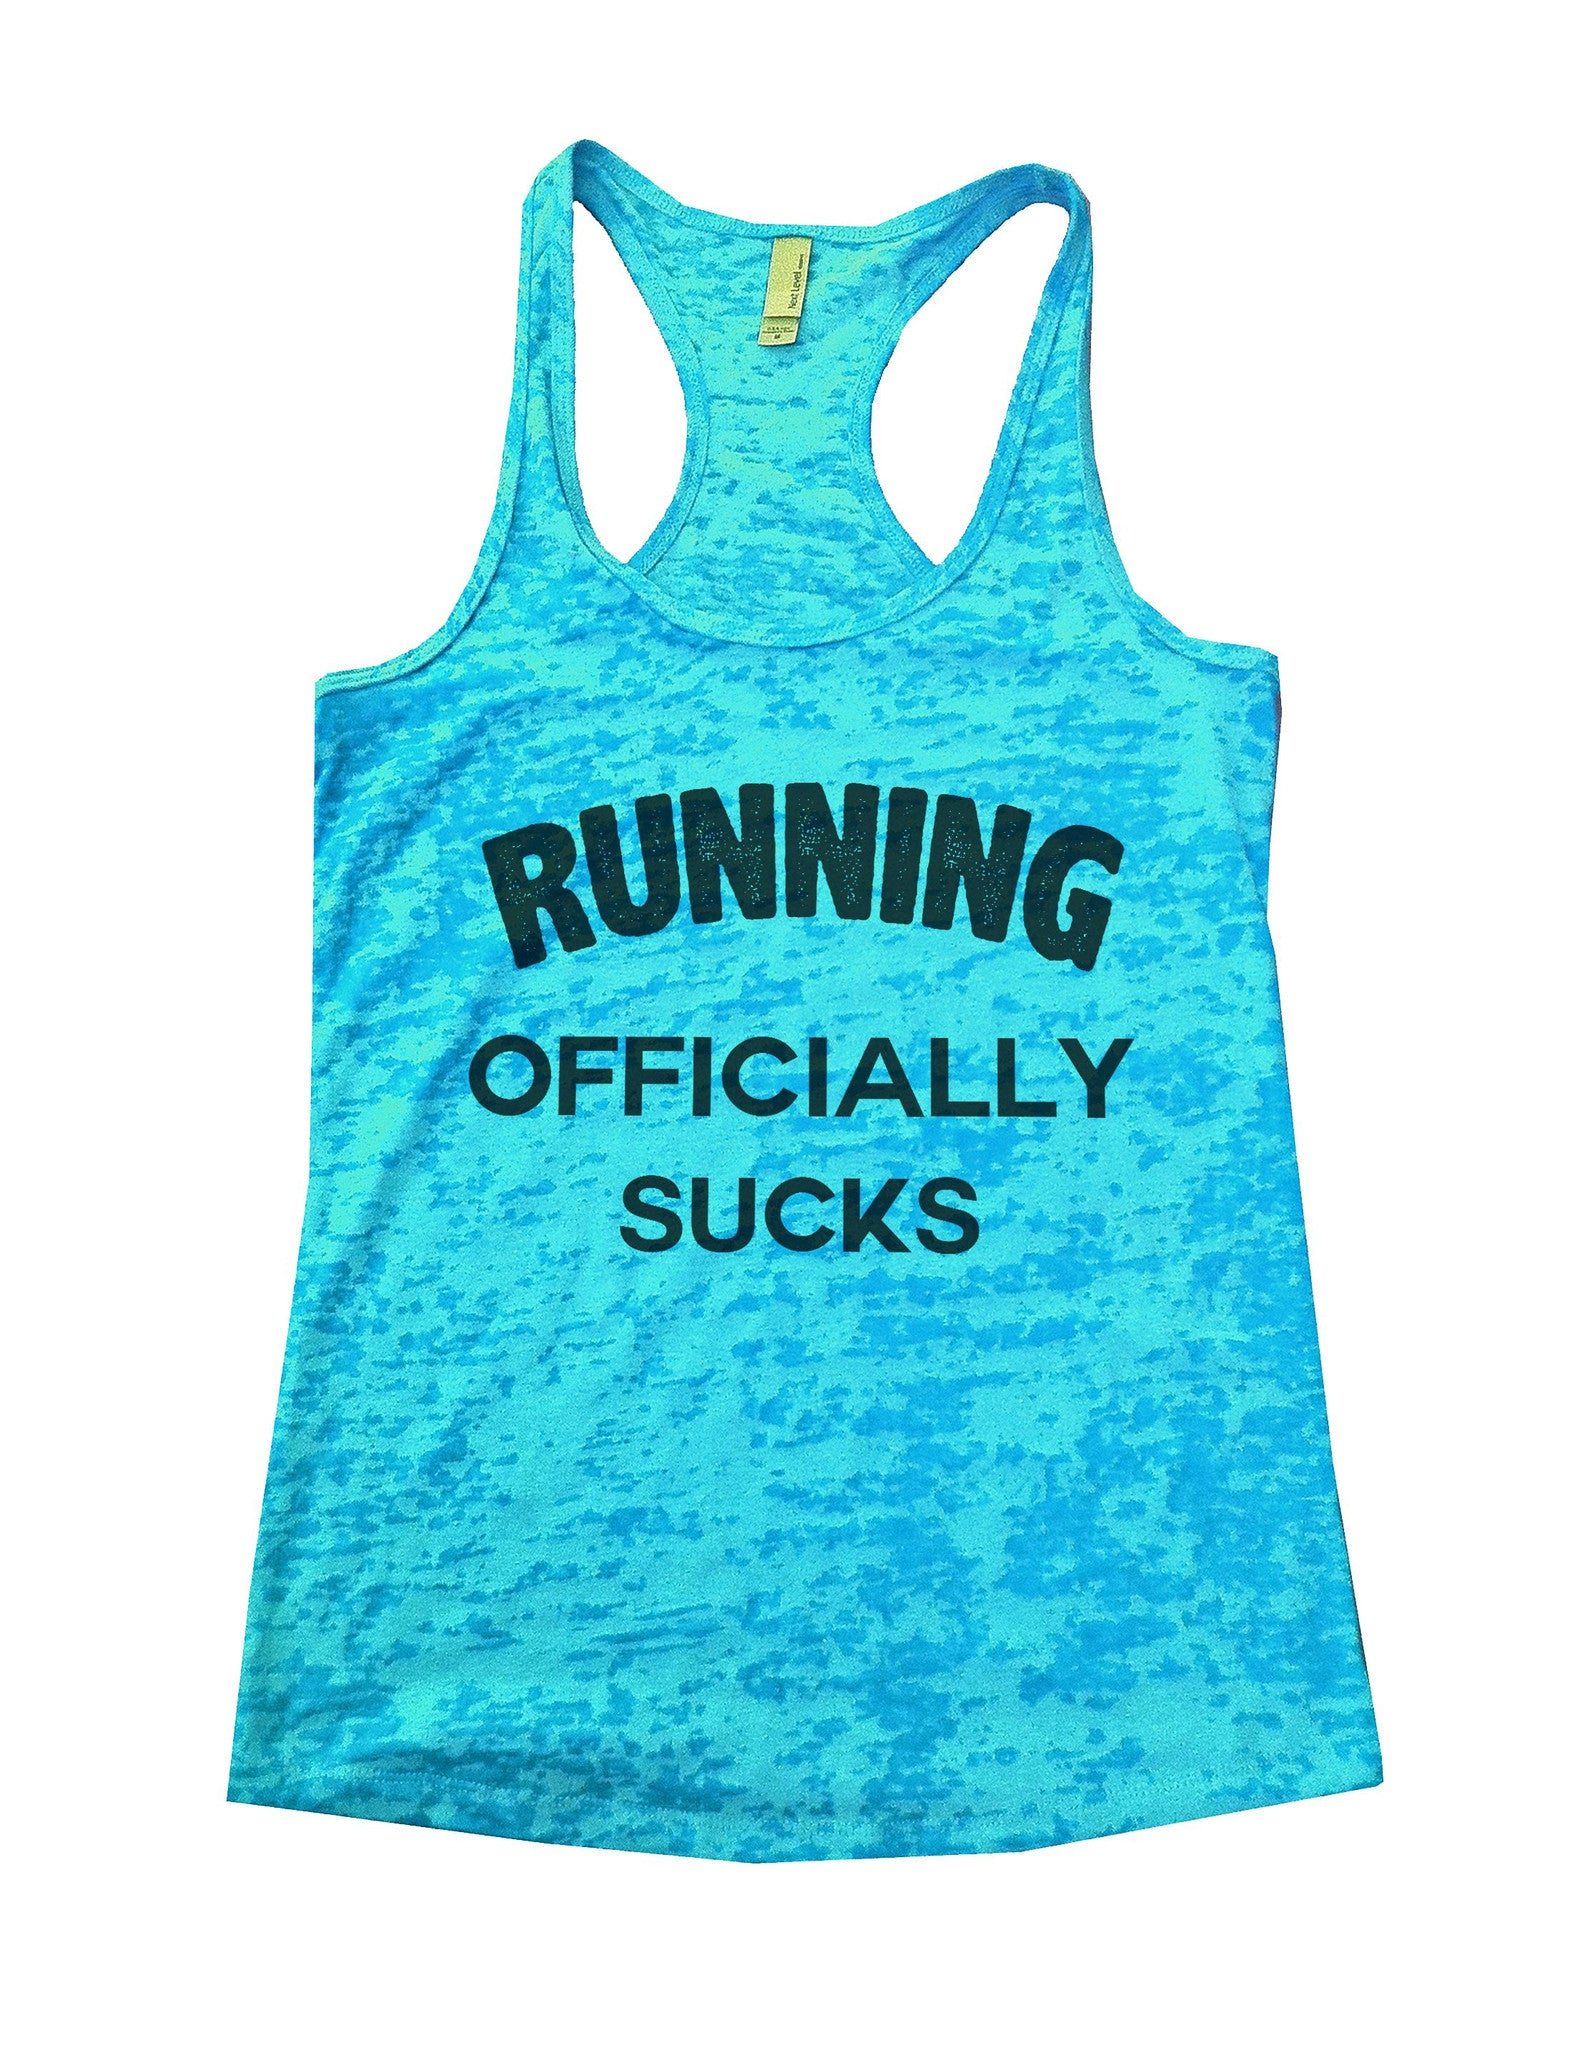 Running Officially Sucks Burnout Tank Top By BurnoutTankTops.com - 645 - Funny Shirts Tank Tops Burnouts and Triblends  - 4